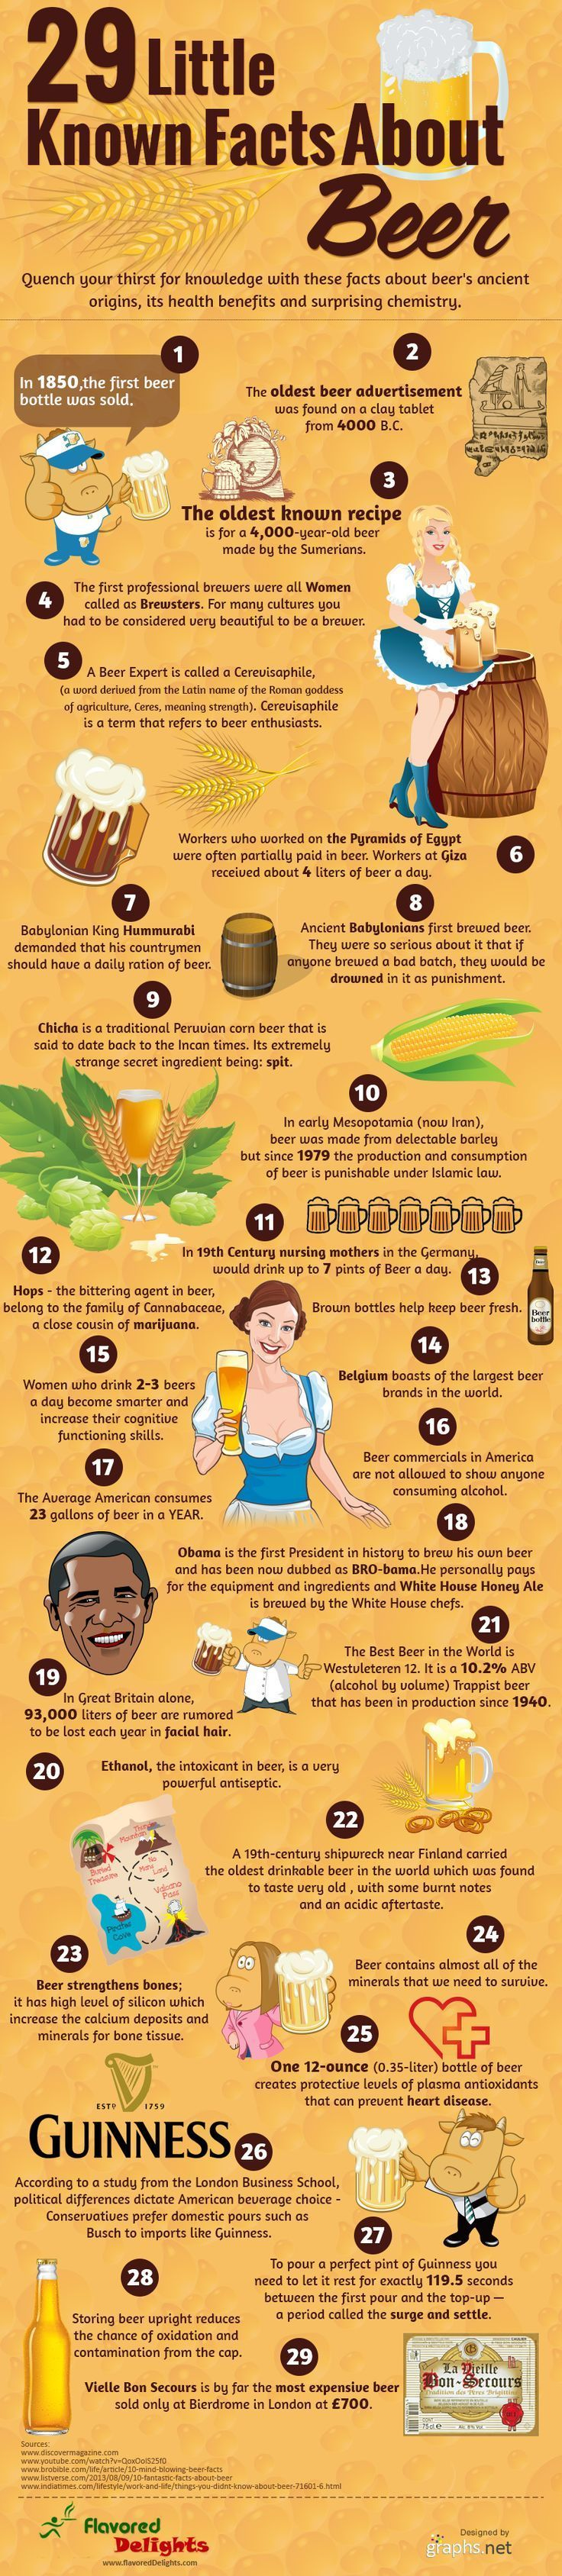 29 Things You Should Know About Beer, For National American Beer Day #infographic #beereducation #homebrew